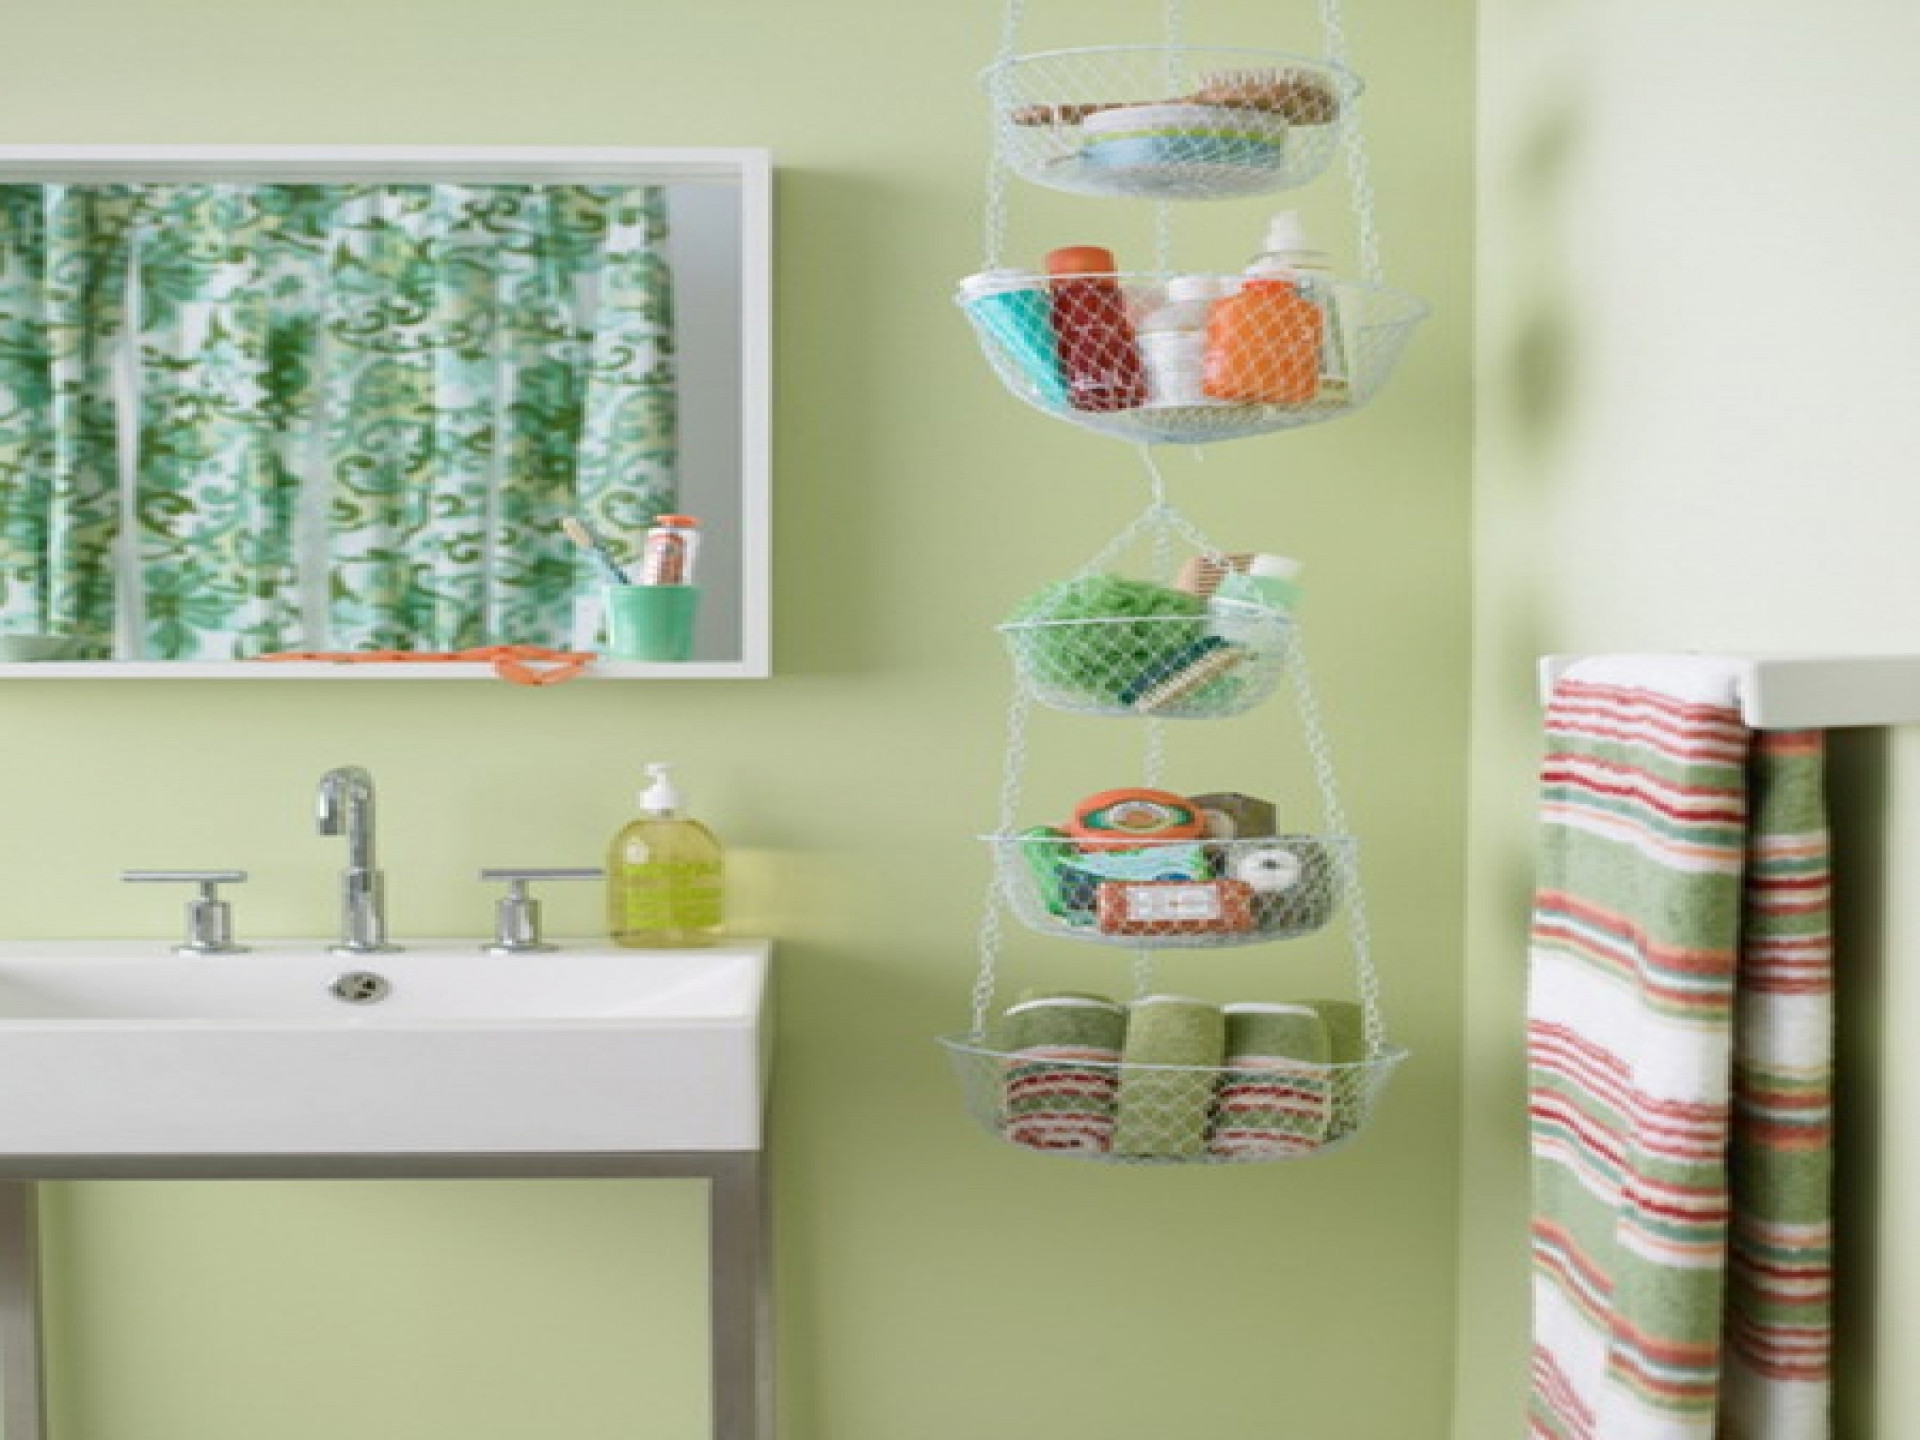 Best ideas about Storage Ideas For Small Spaces On A Budget . Save or Pin Bathroom Small Storage Ideas A Bud Home Best Cheap Now.